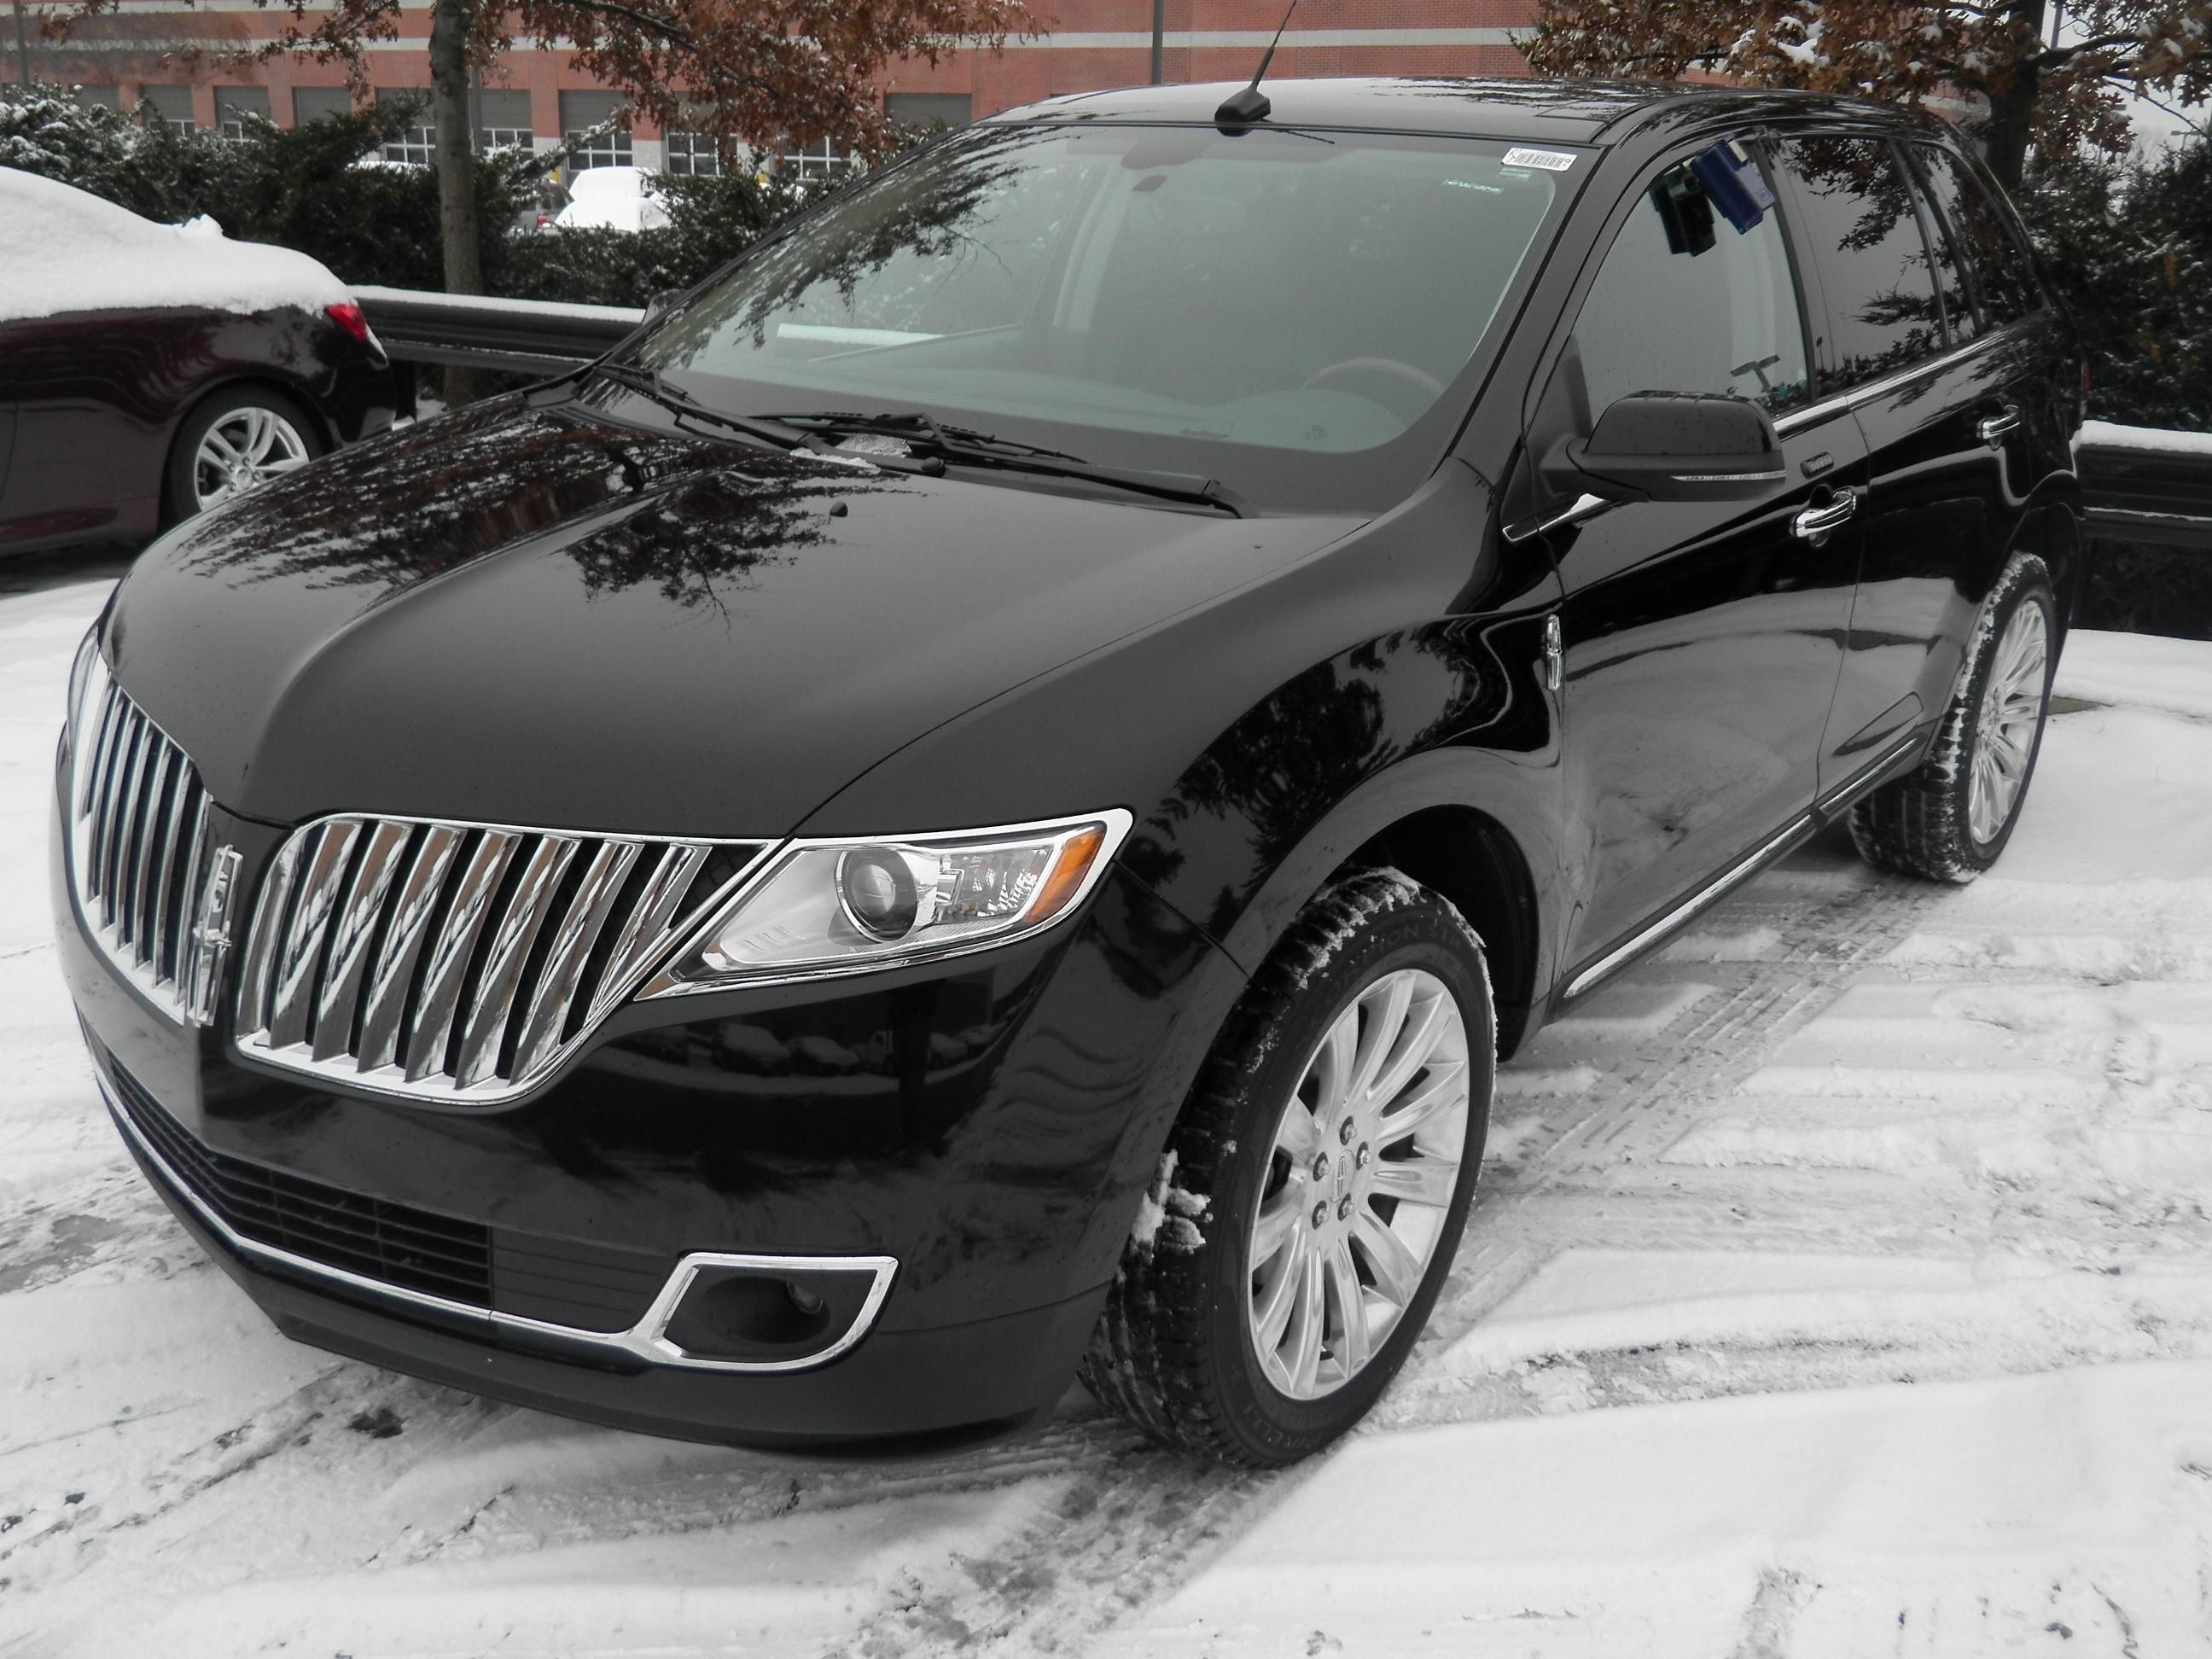 by other any lincoln mkx mkz limited slip blog name